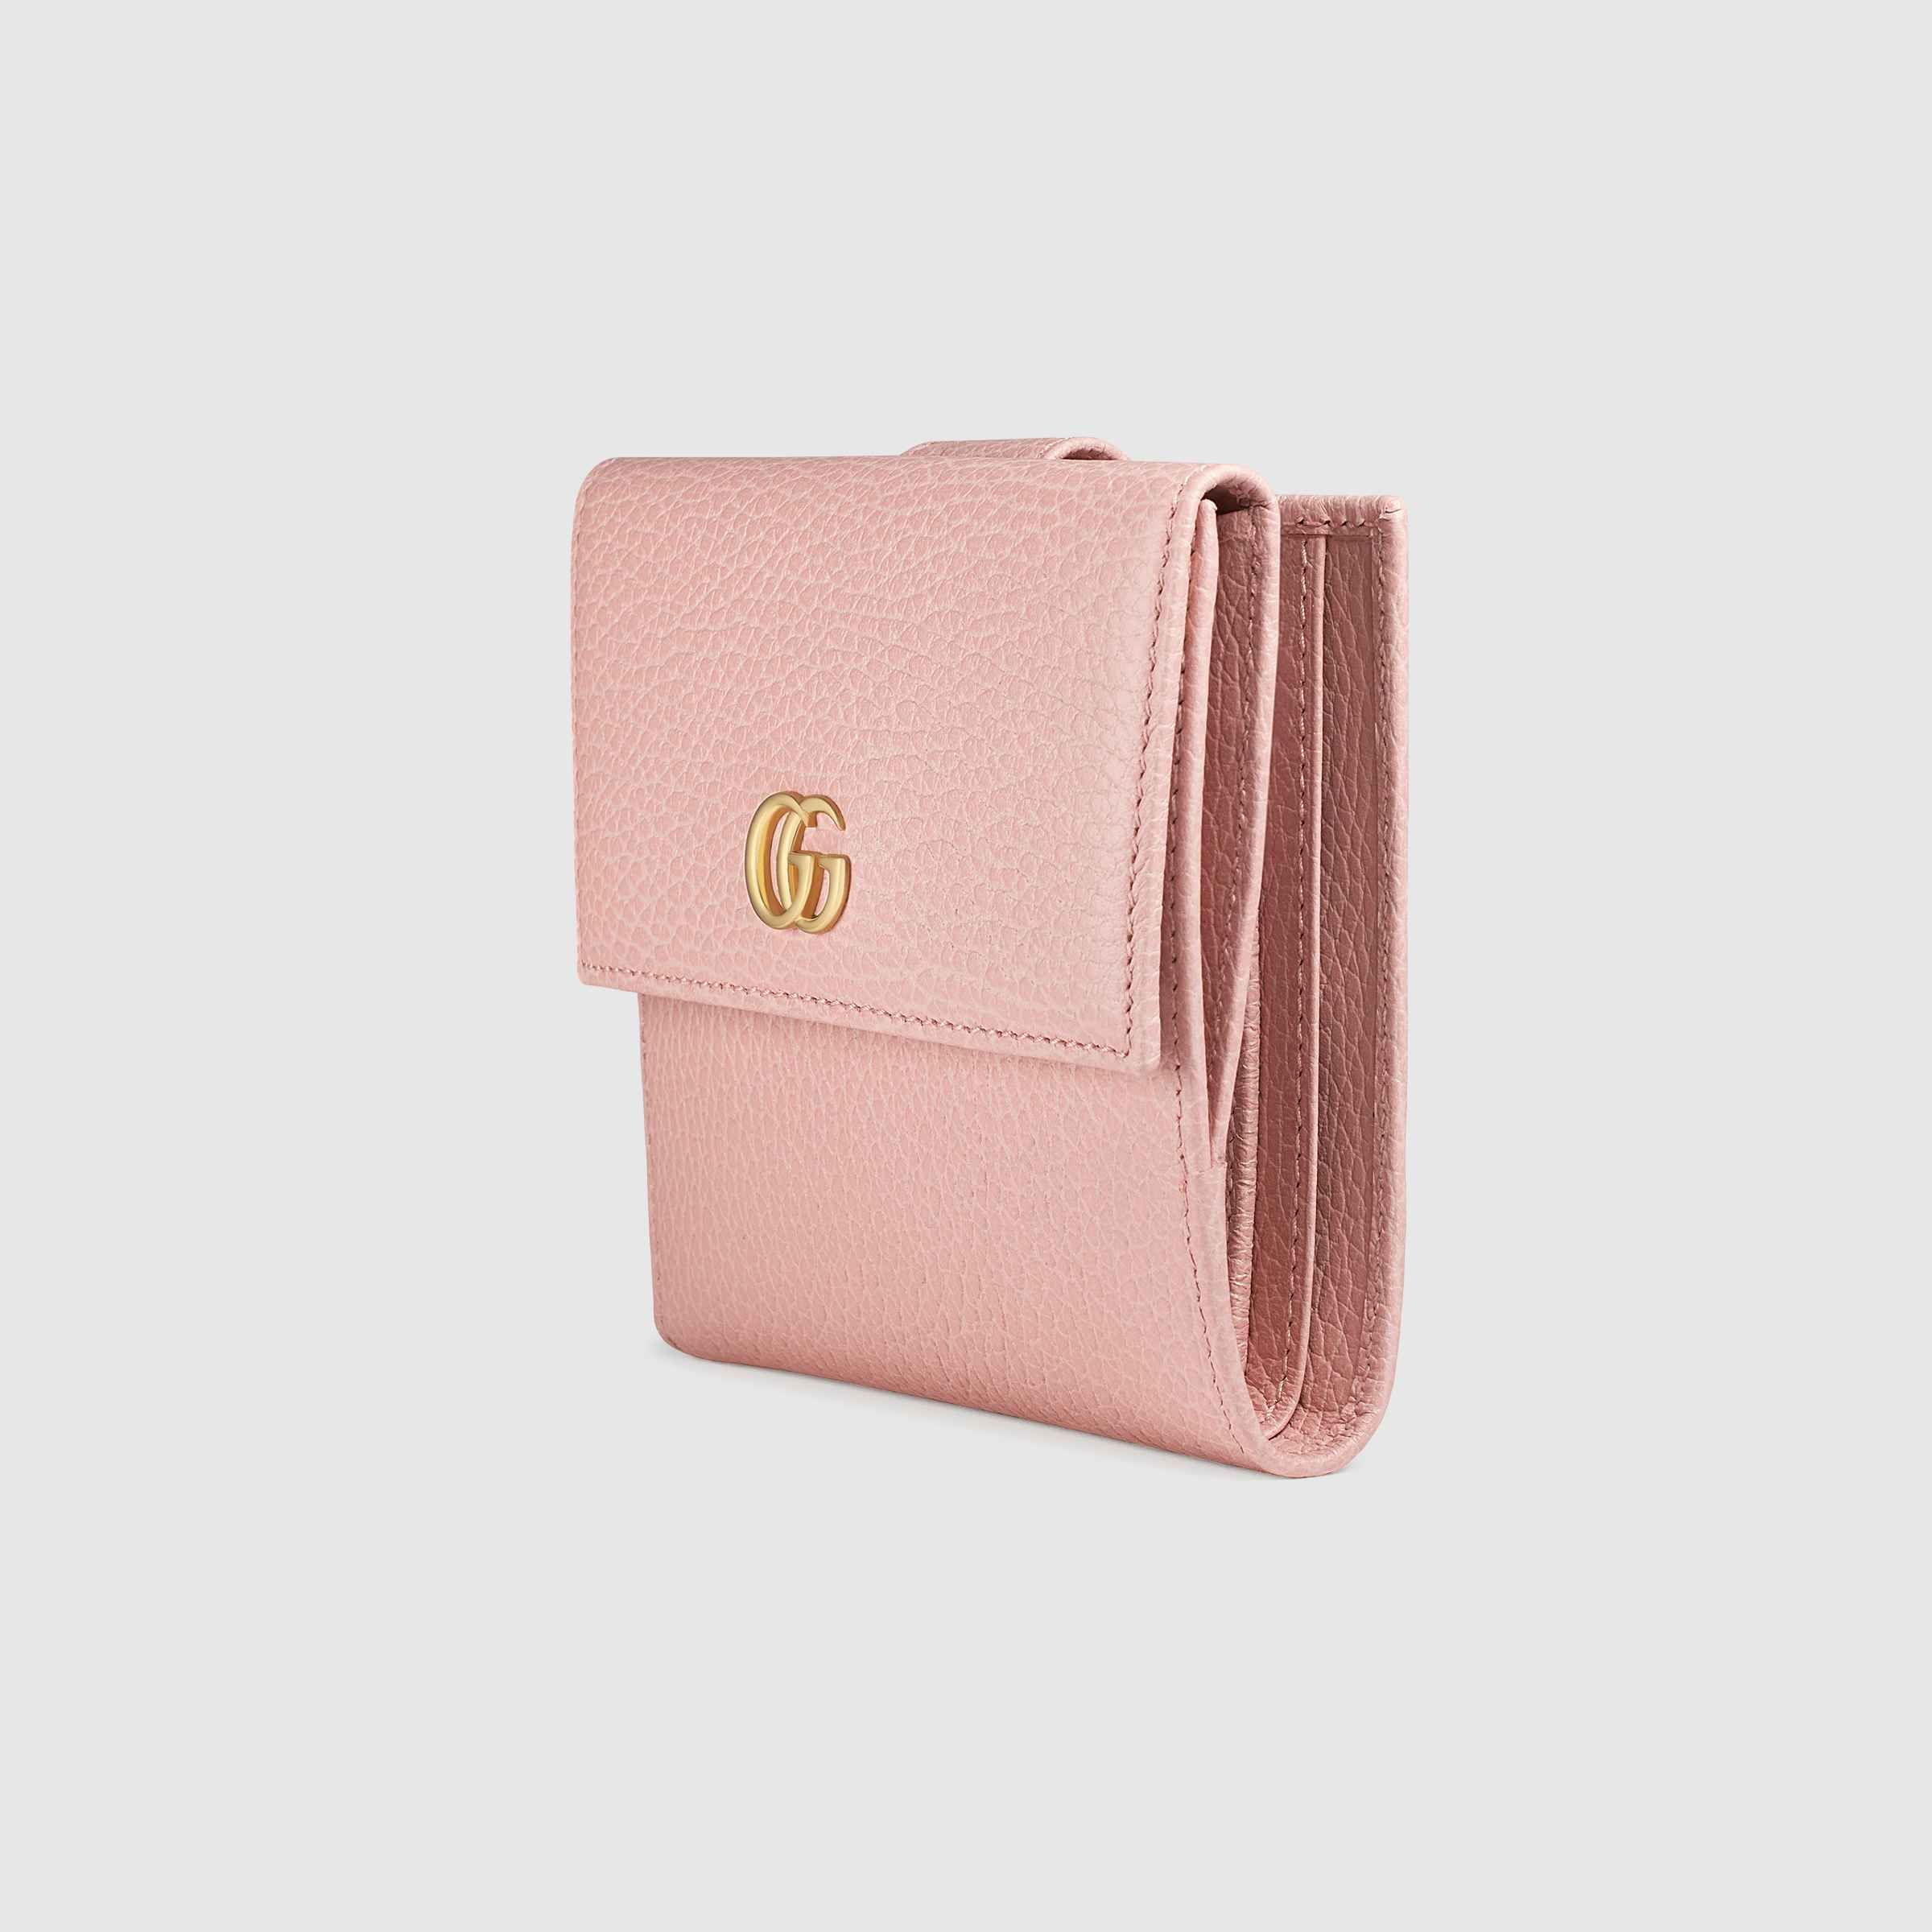 ca1fb127915c Shop the Leather french flap wallet by Gucci. A french flap wallet with  small Double G metal detail. Made in textured leather.